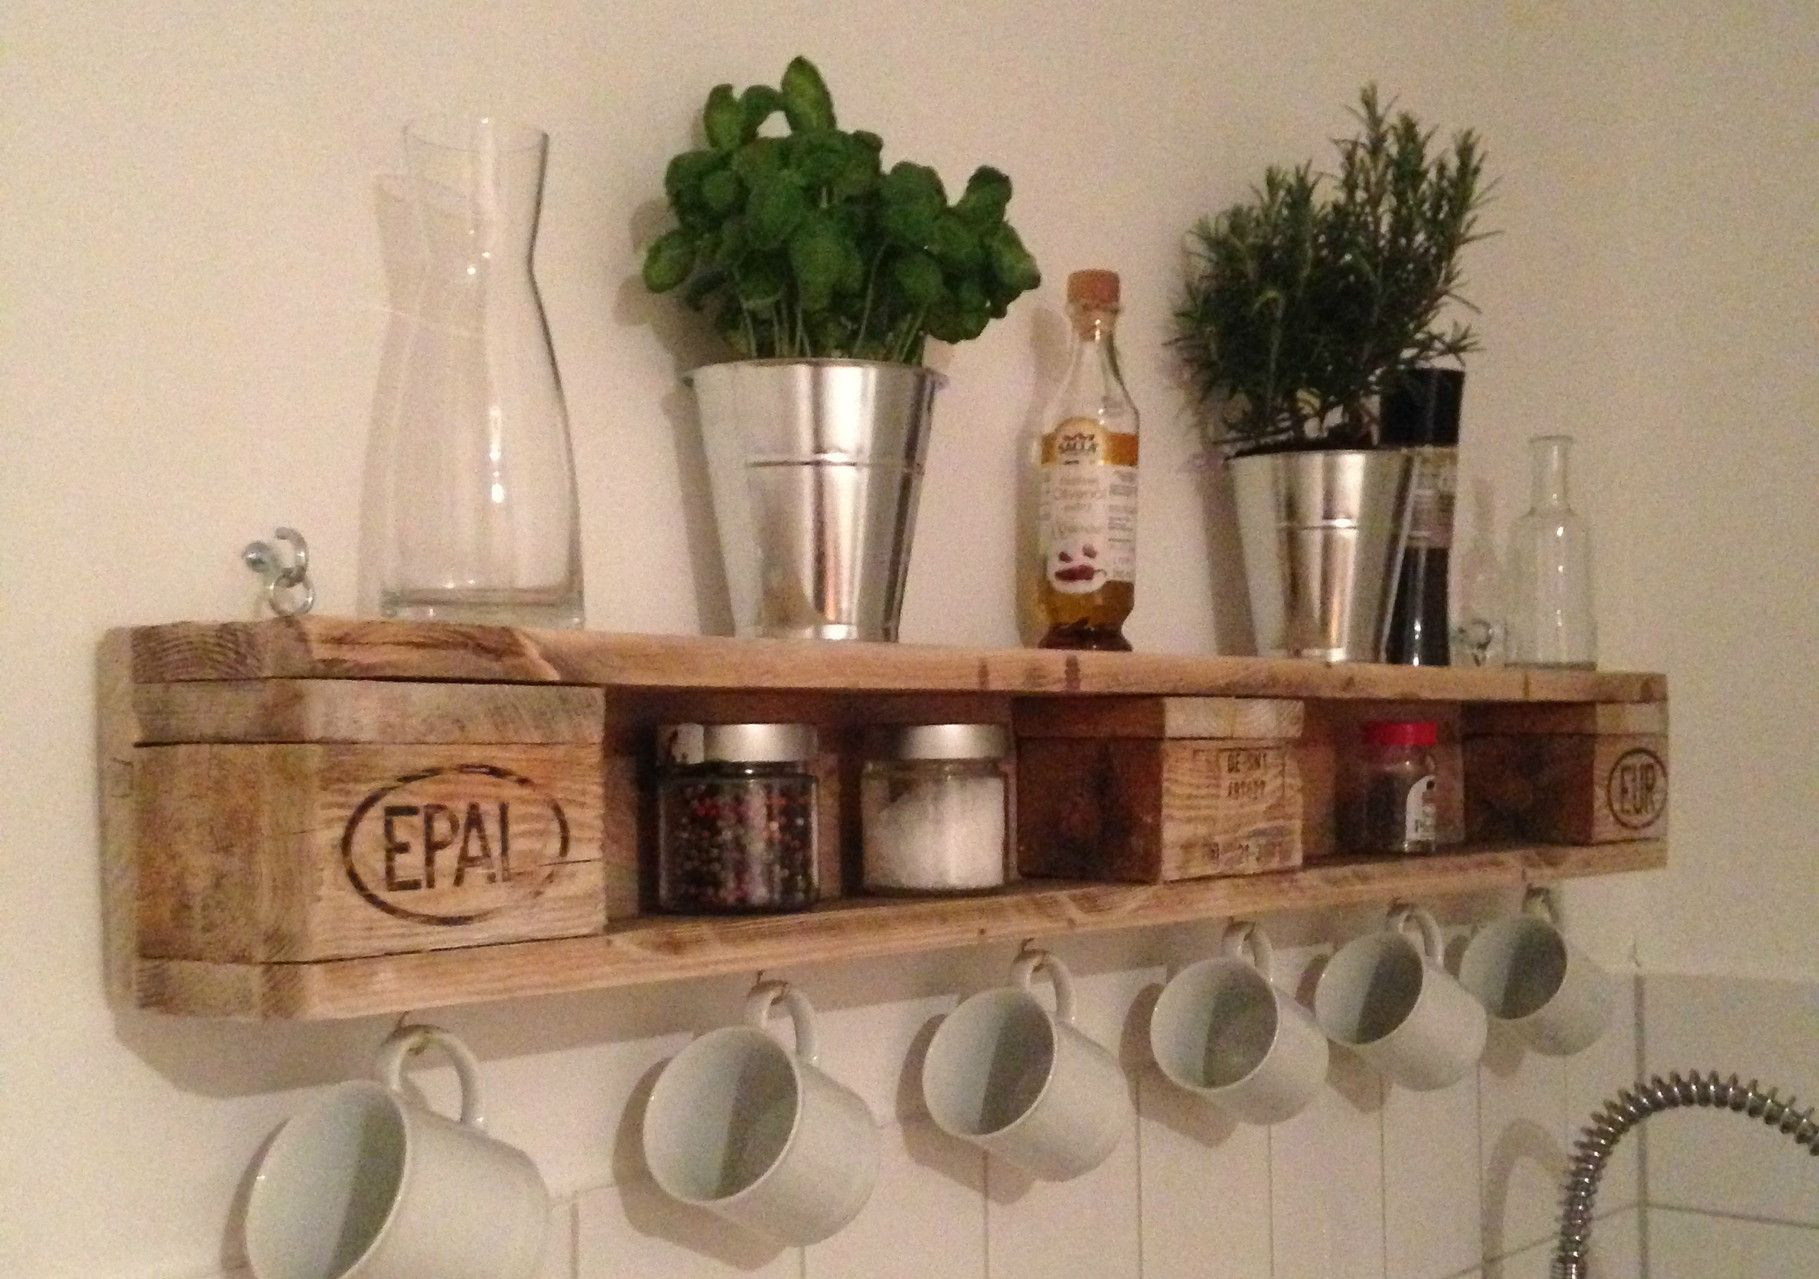 DIY-Wandregal aus Europaletten #europalette #kitchen | Paletten ...